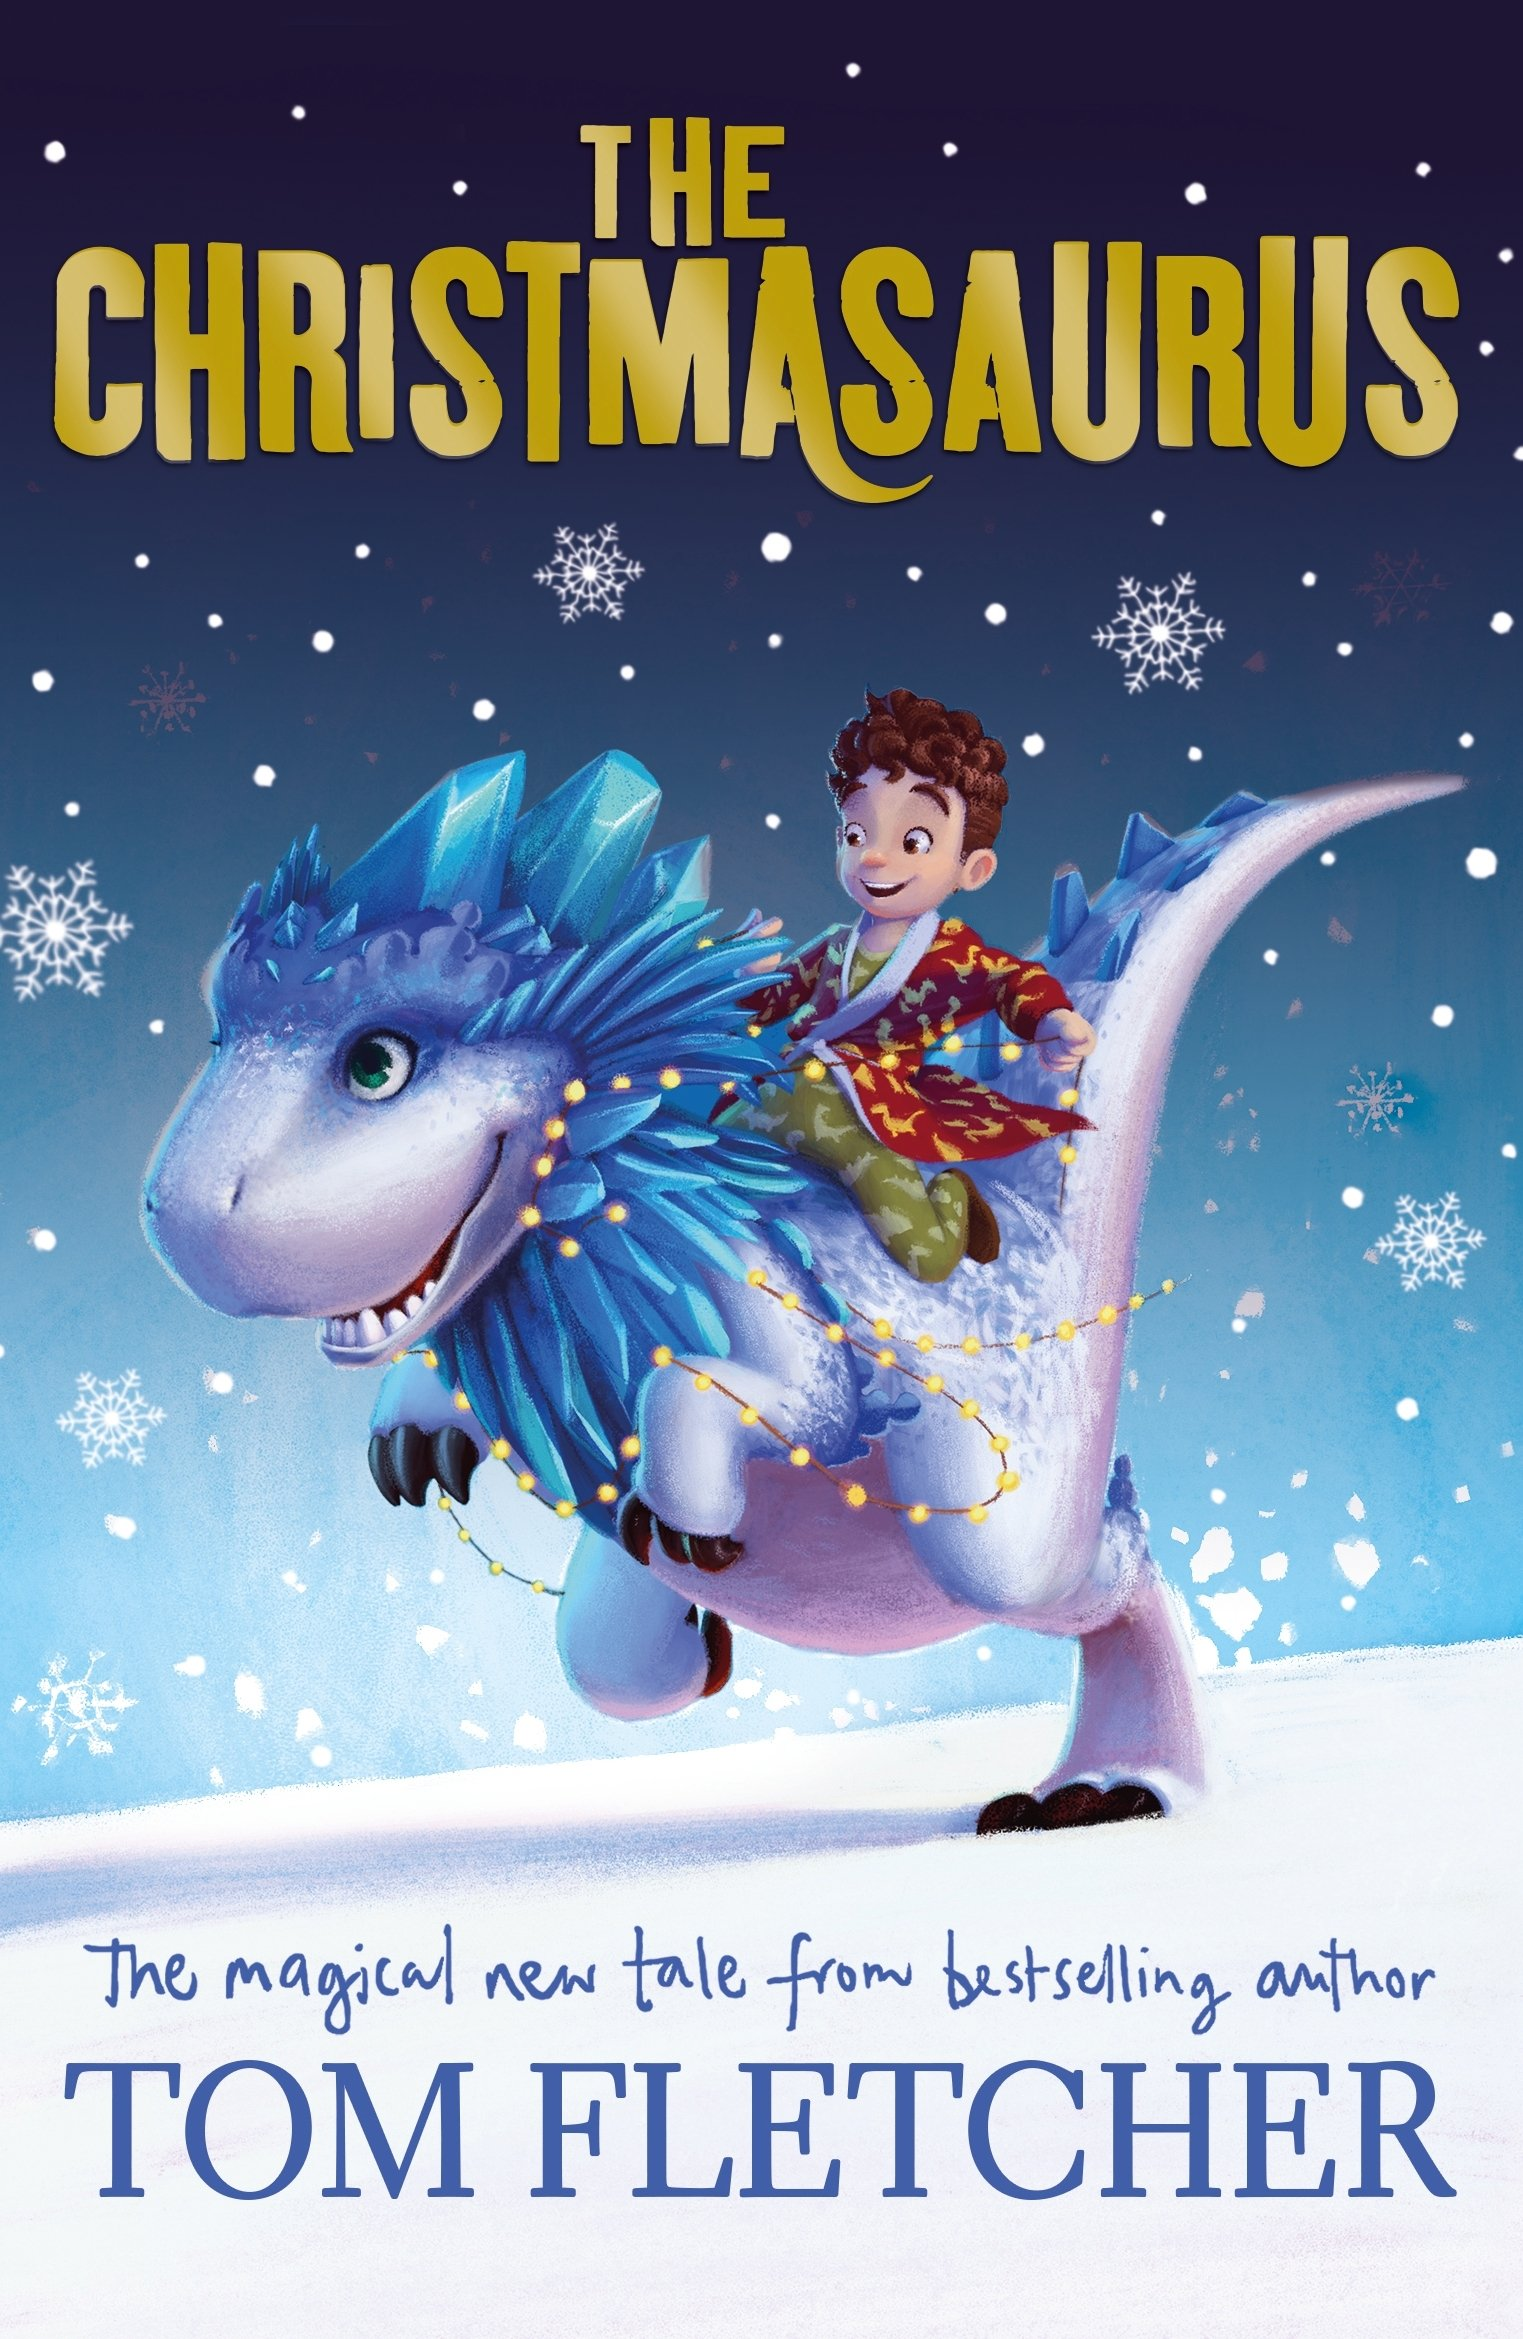 The Christmasaurus by Tom Fletcher | Book Review